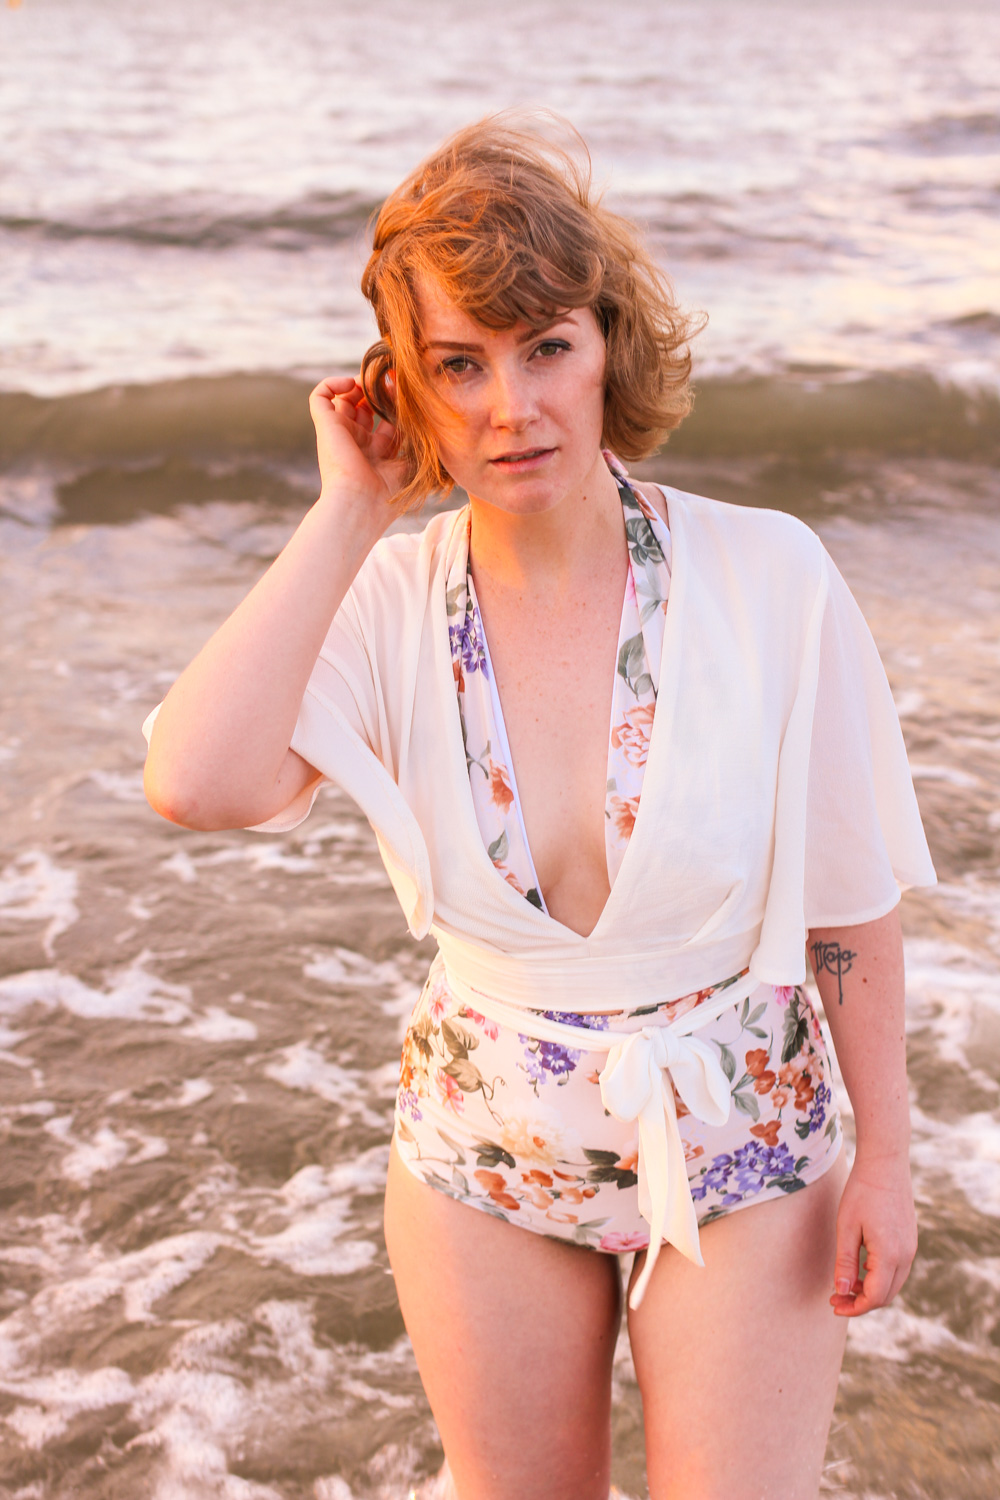 @findingfemme wears floral Etsy one piece swimsuit at the beach